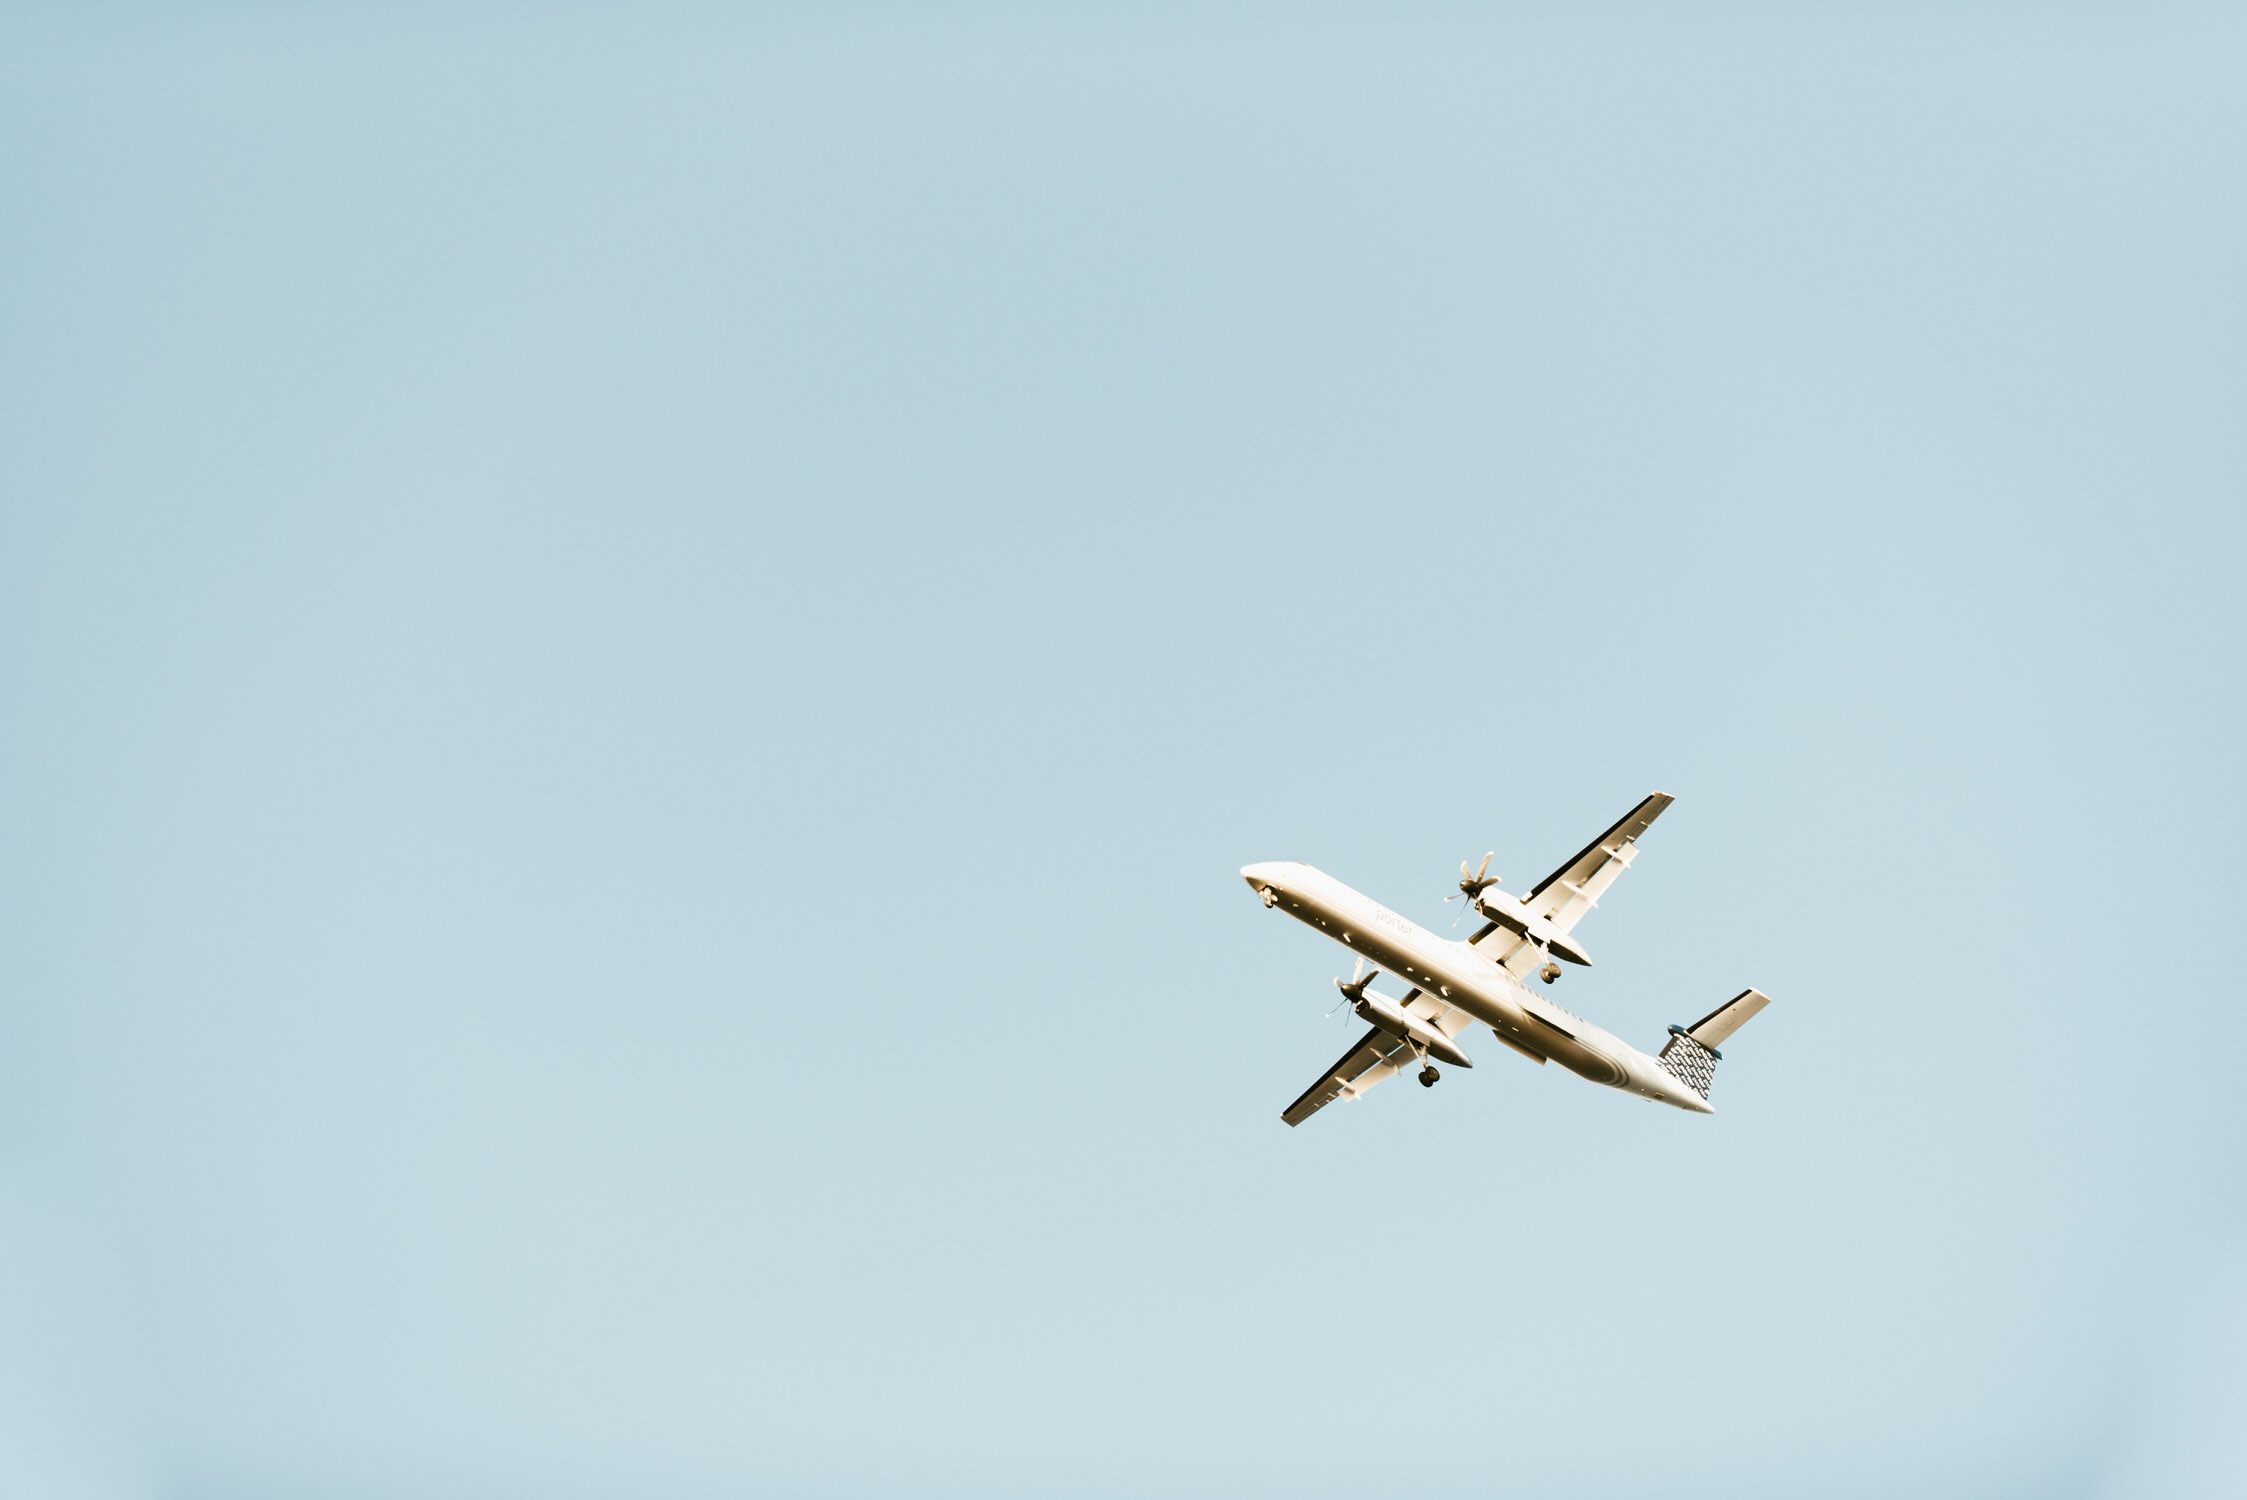 Plane flying over Cherry Beach in Toronto